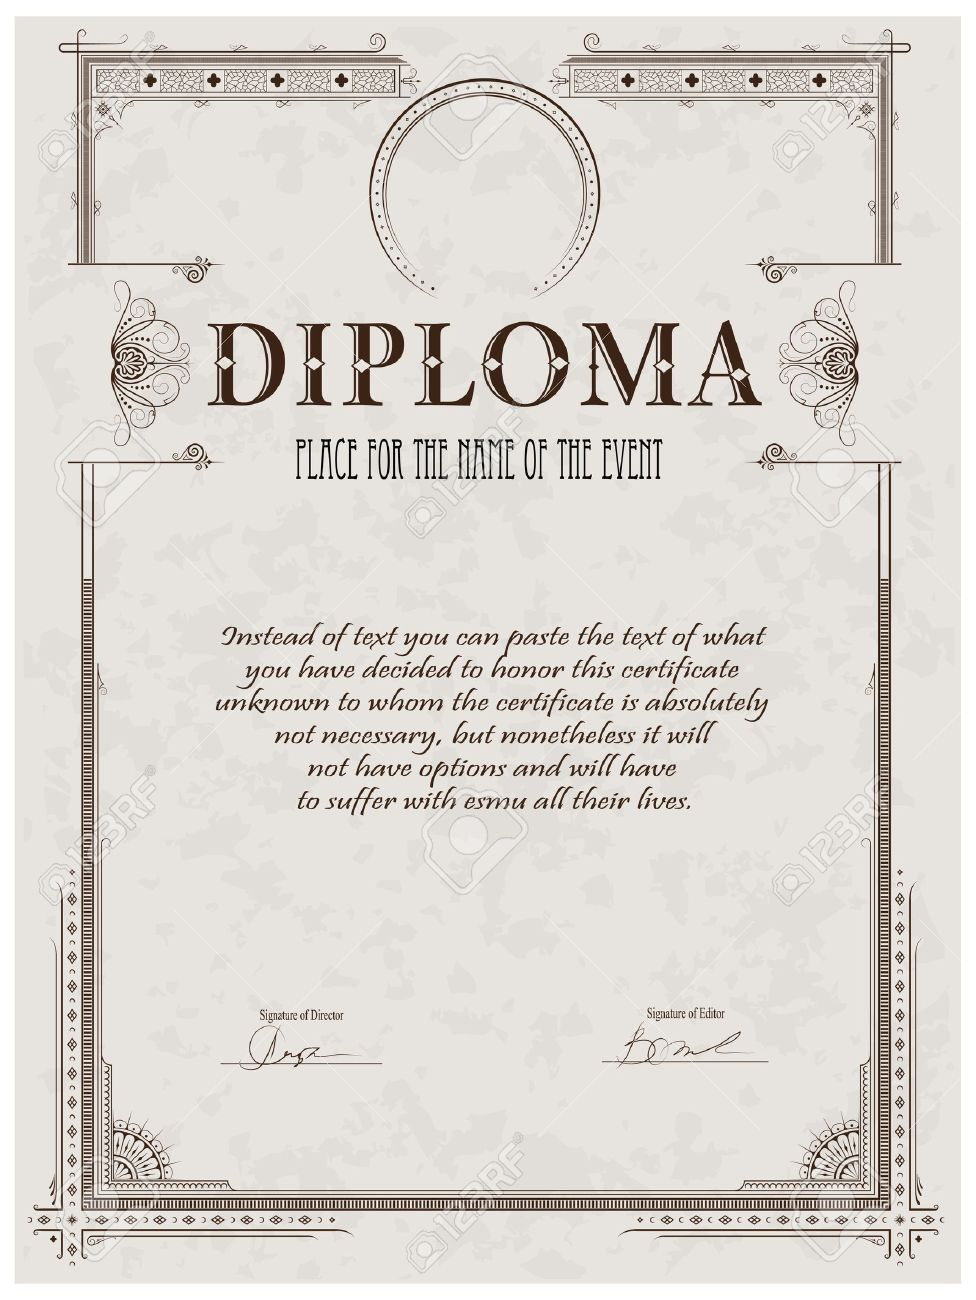 Vintage frame certificate or diploma template royalty free vintage frame certificate or diploma template stock vector 11877721 pronofoot35fo Choice Image